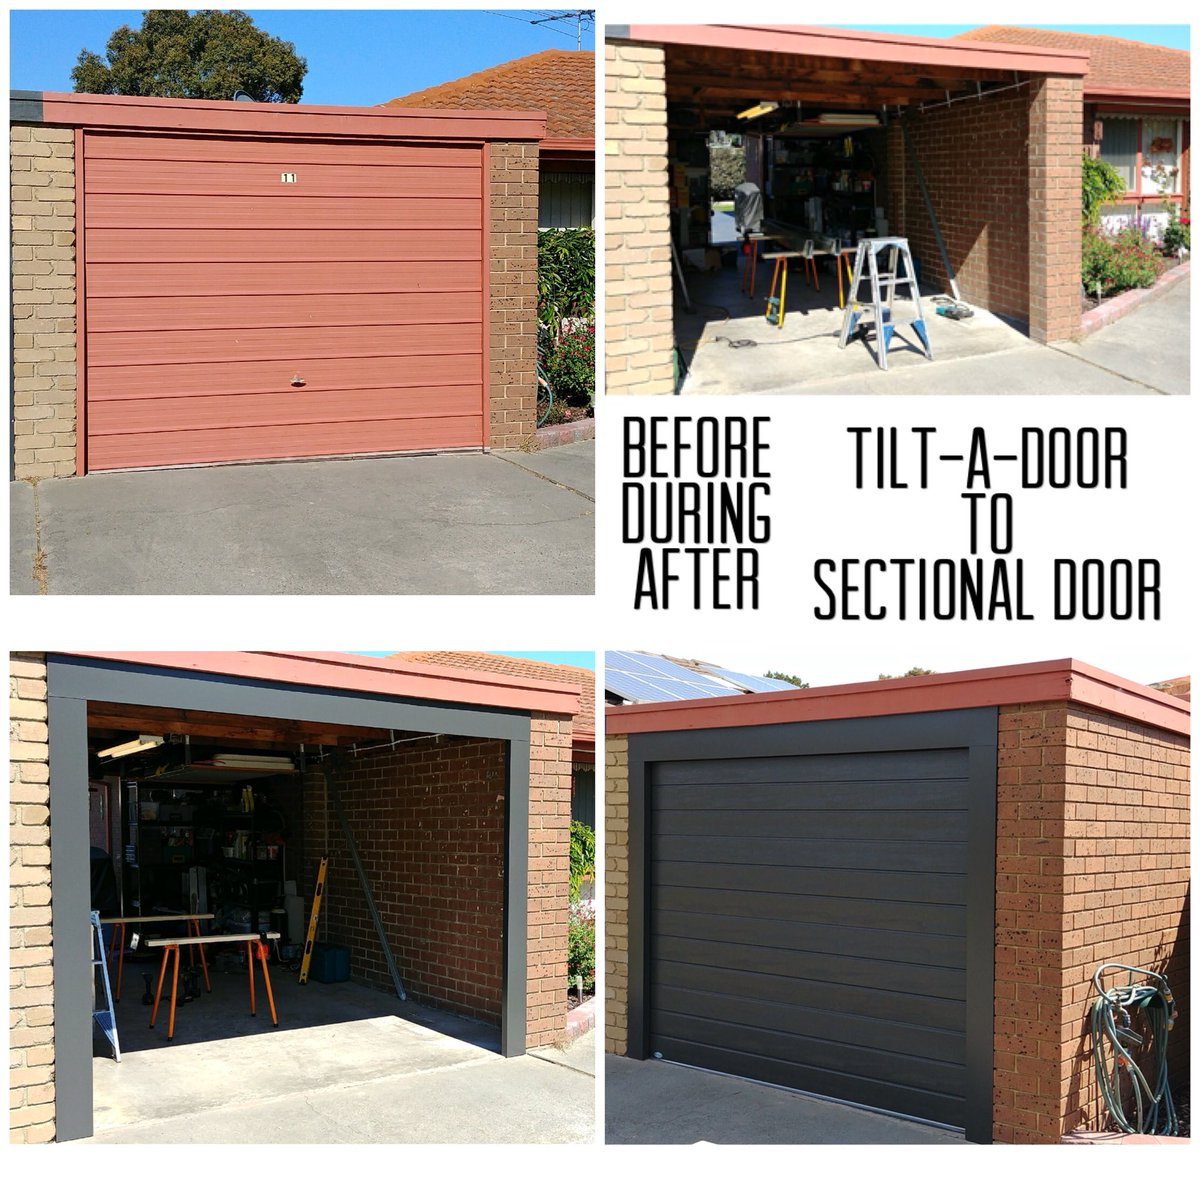 Everlift Garage Door On Twitter Transformation Of A Tilt A Door To